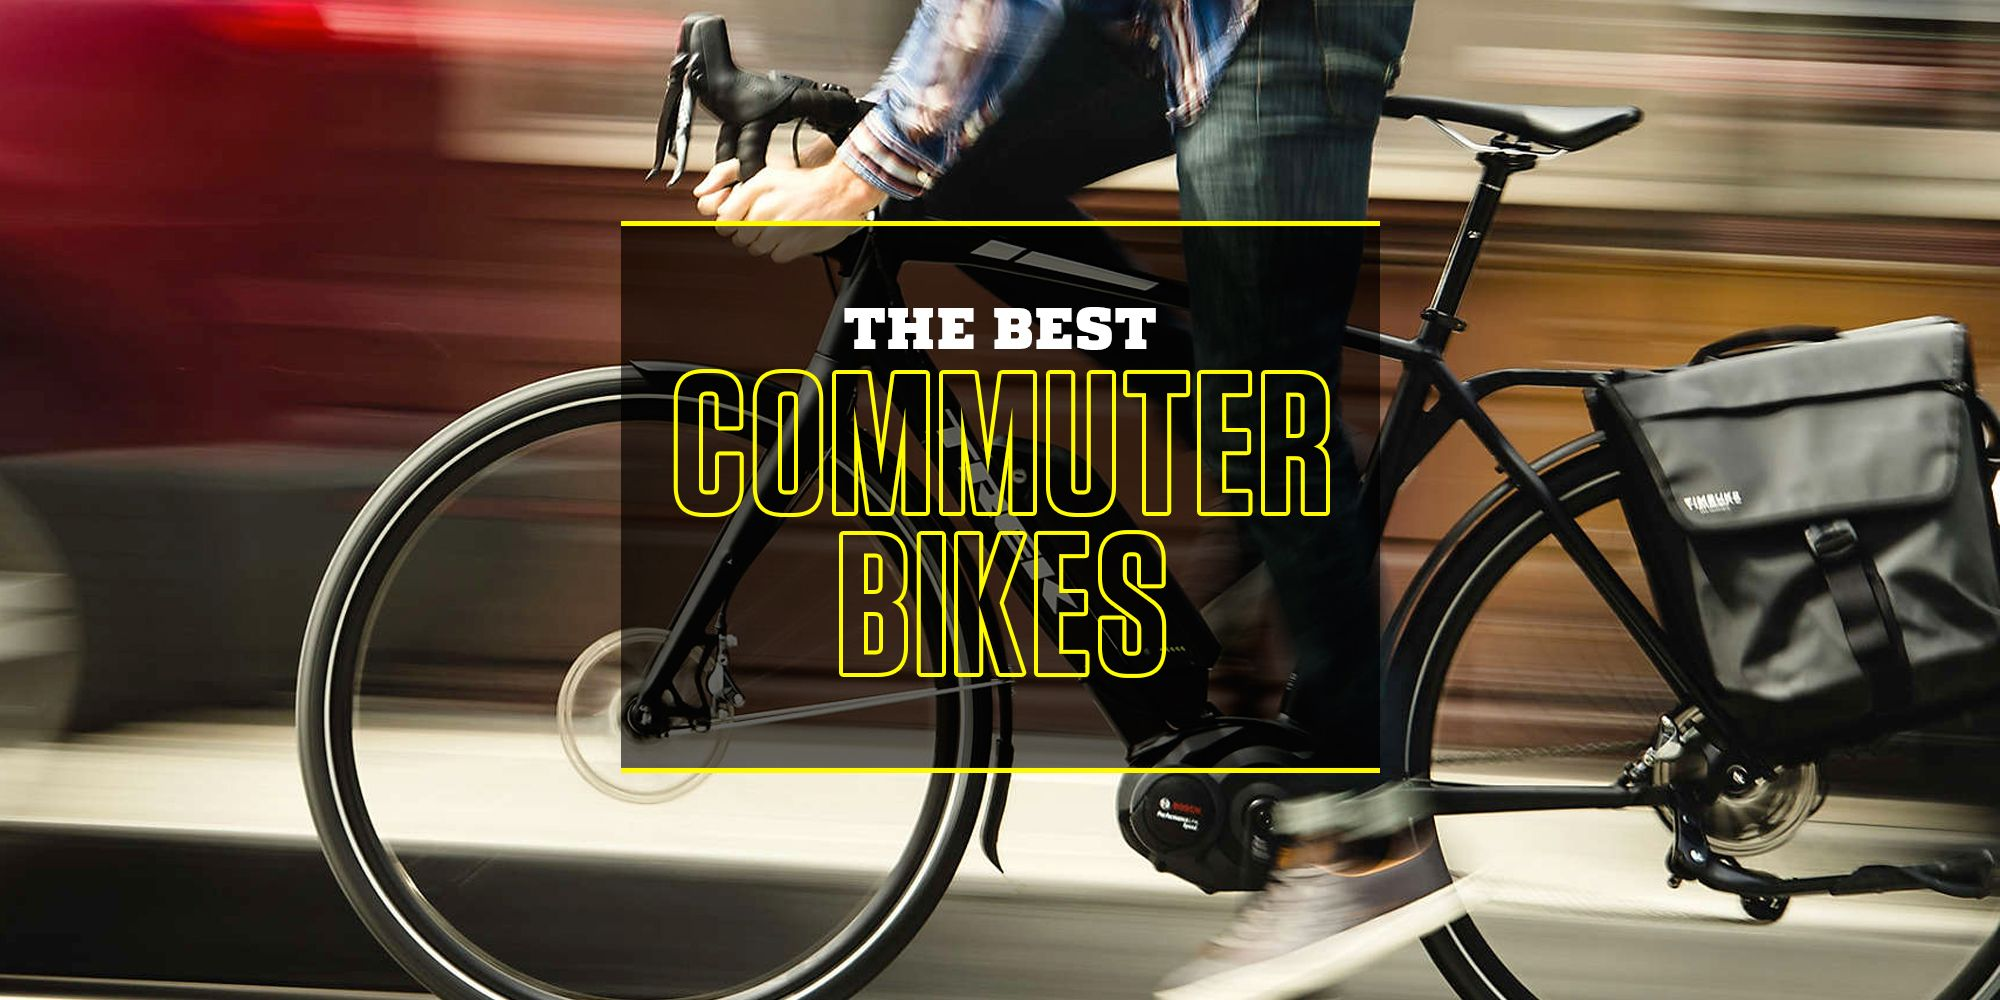 Bad Bike Beach Vintage Side Best Commuter Bikes 2019 Bikes For Riding In The City